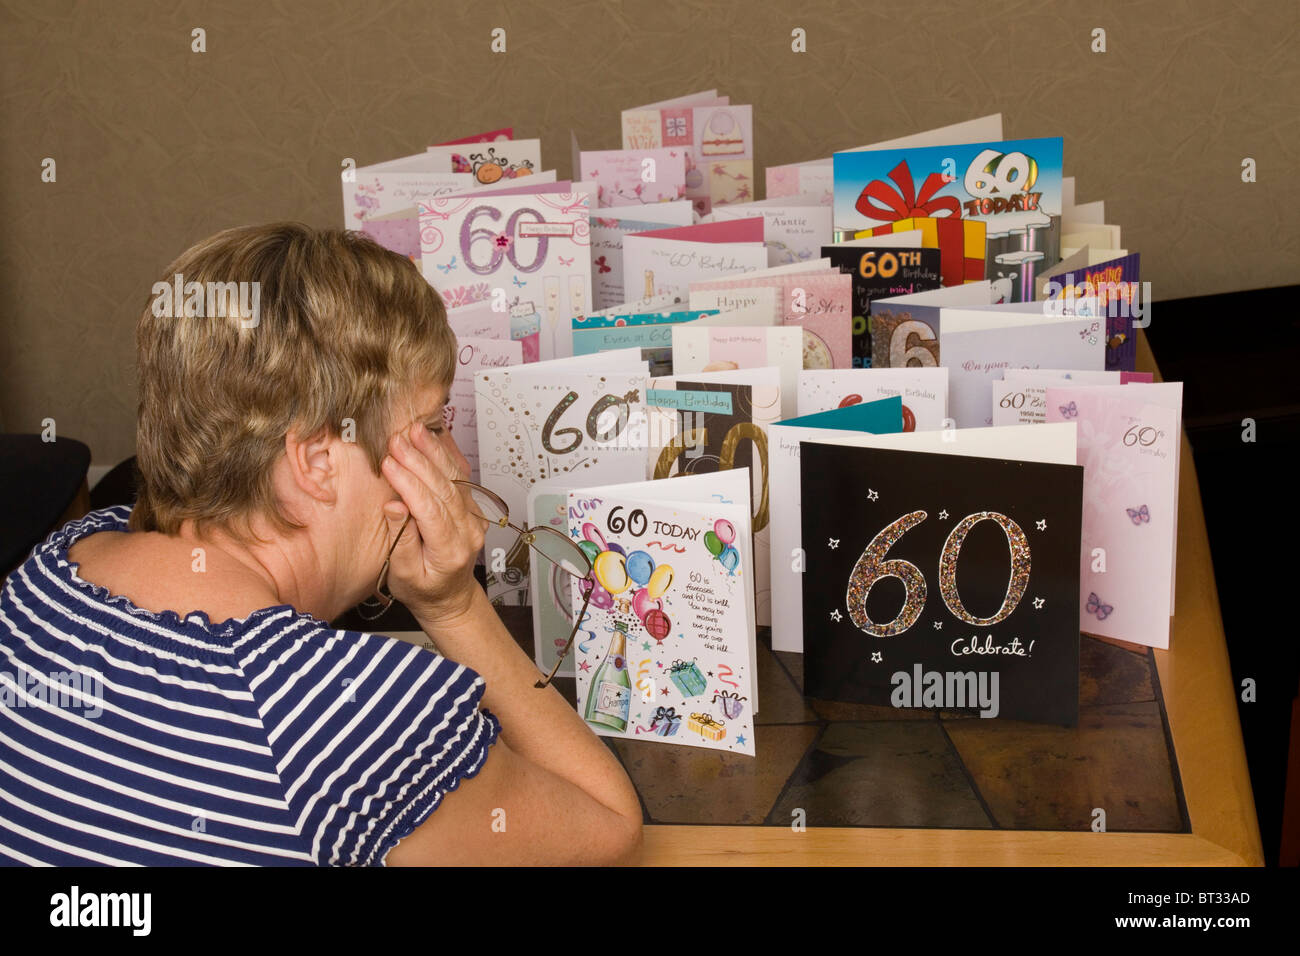 A Depressed Woman Looks At Her 60th Birthday Cards